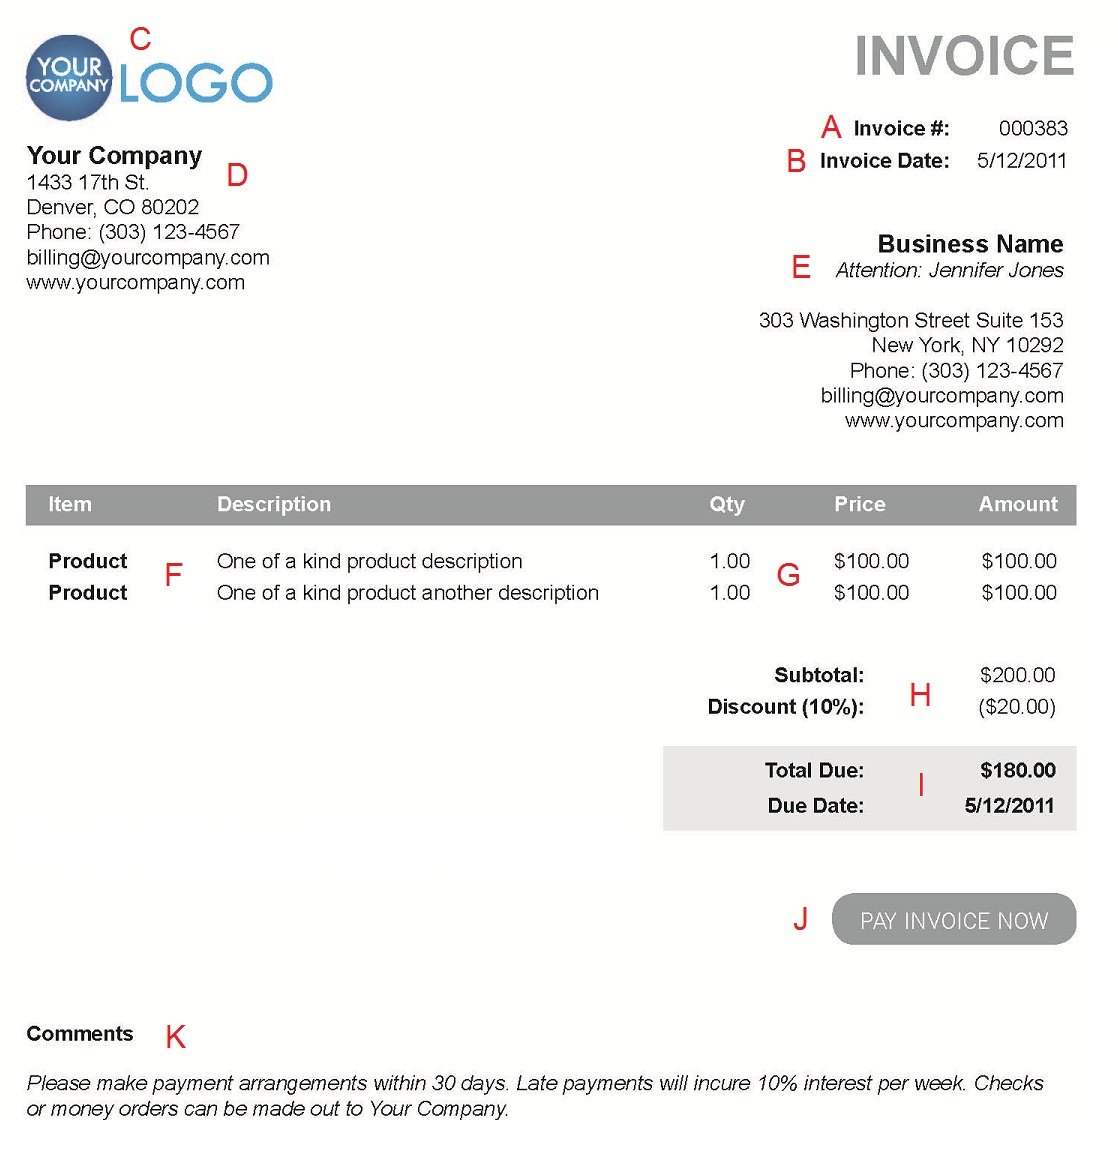 Gpwaus  Picturesque The  Different Sections Of An Electronic Payment Invoice With Goodlooking A  With Cool How Much Is Msrp Over Dealer Invoice Also Custom Printed Invoice Books In Addition Service Invoices Templates Free And Free Online Invoice Creator Template As Well As Online Invoicing Solutions Additionally Sole Trader Invoice Example From Paysimplecom With Gpwaus  Goodlooking The  Different Sections Of An Electronic Payment Invoice With Cool A  And Picturesque How Much Is Msrp Over Dealer Invoice Also Custom Printed Invoice Books In Addition Service Invoices Templates Free From Paysimplecom